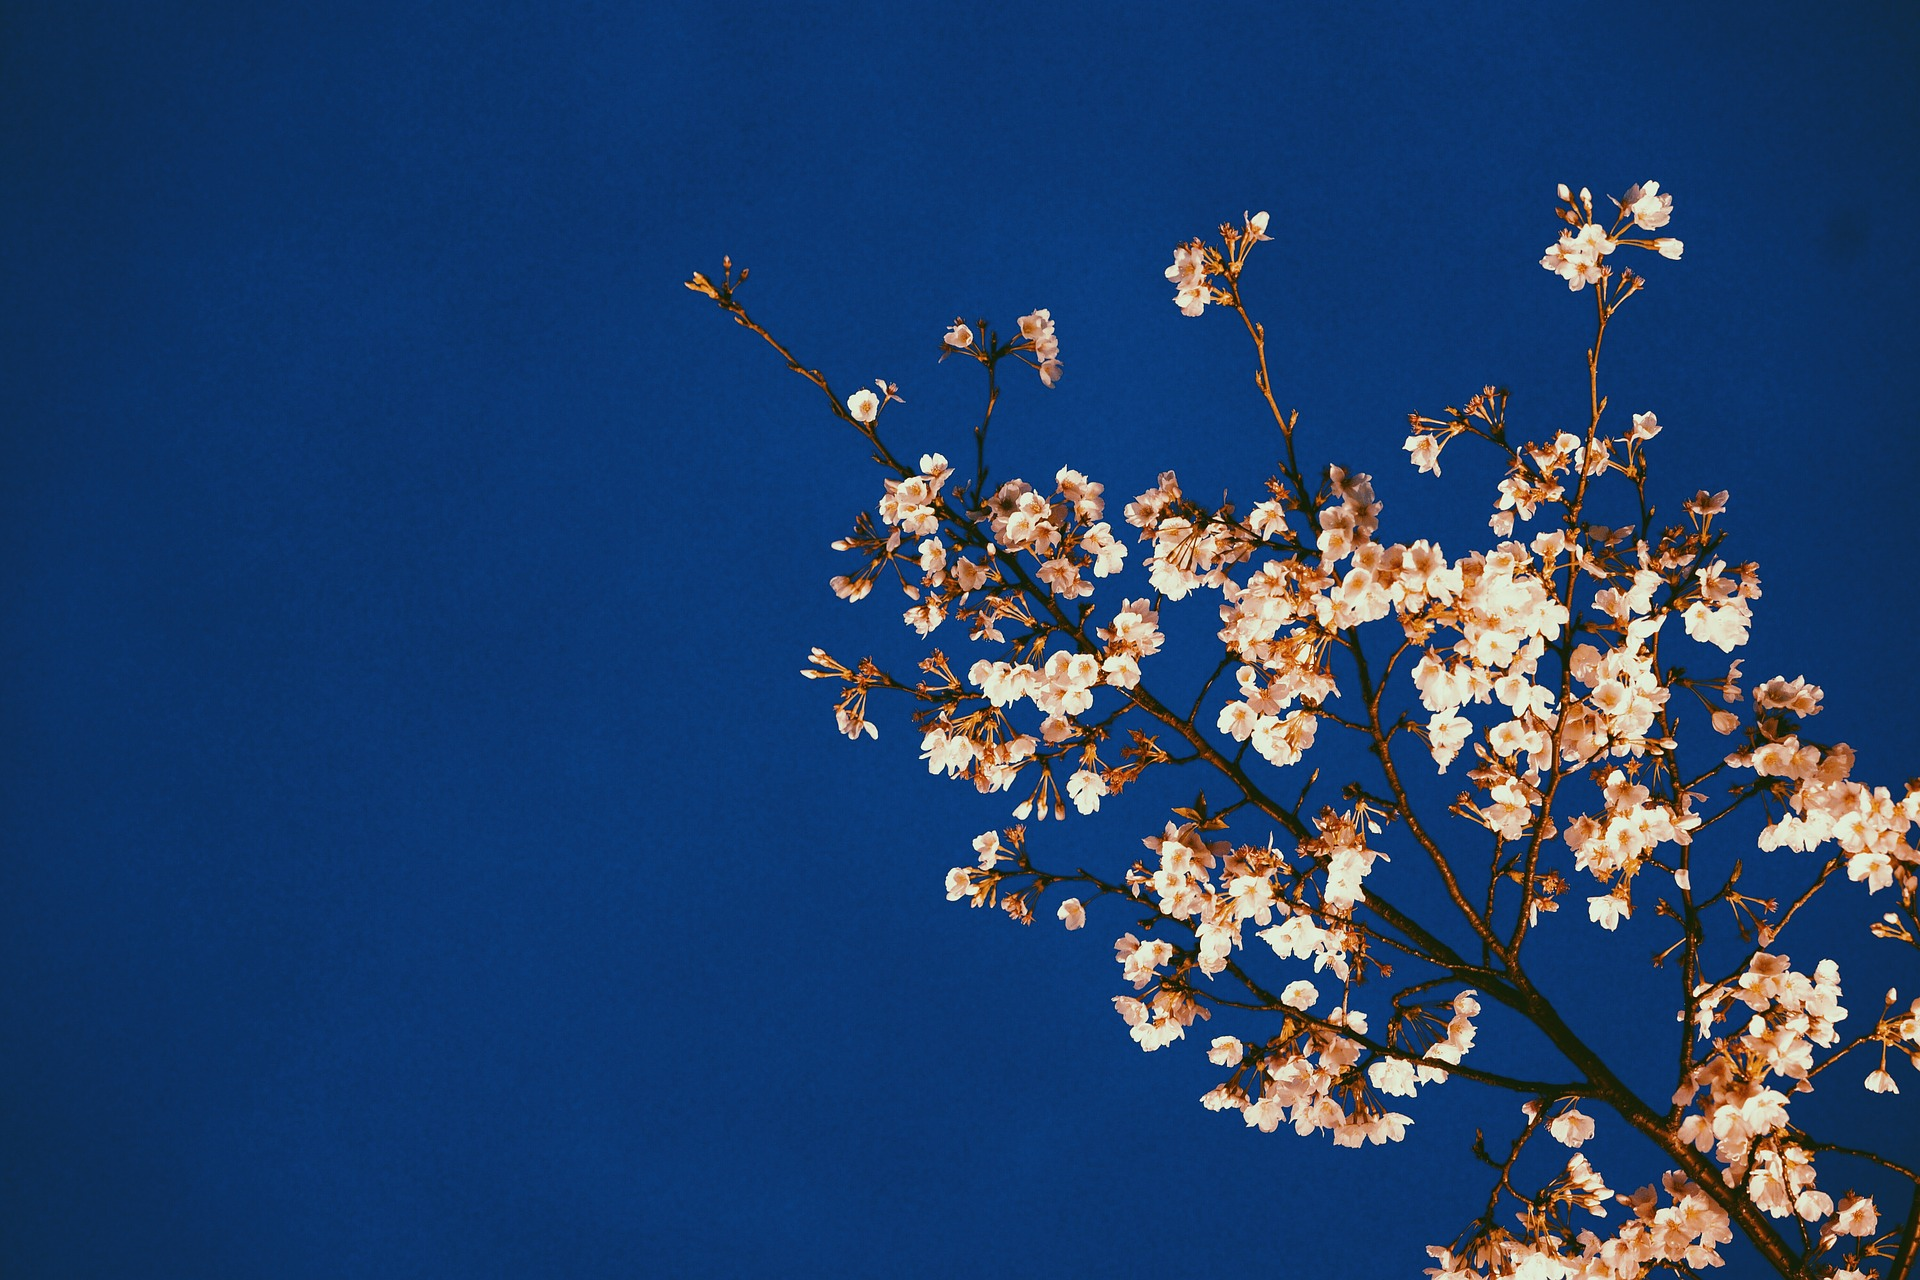 Cherry blossom. Photo: Pixabay